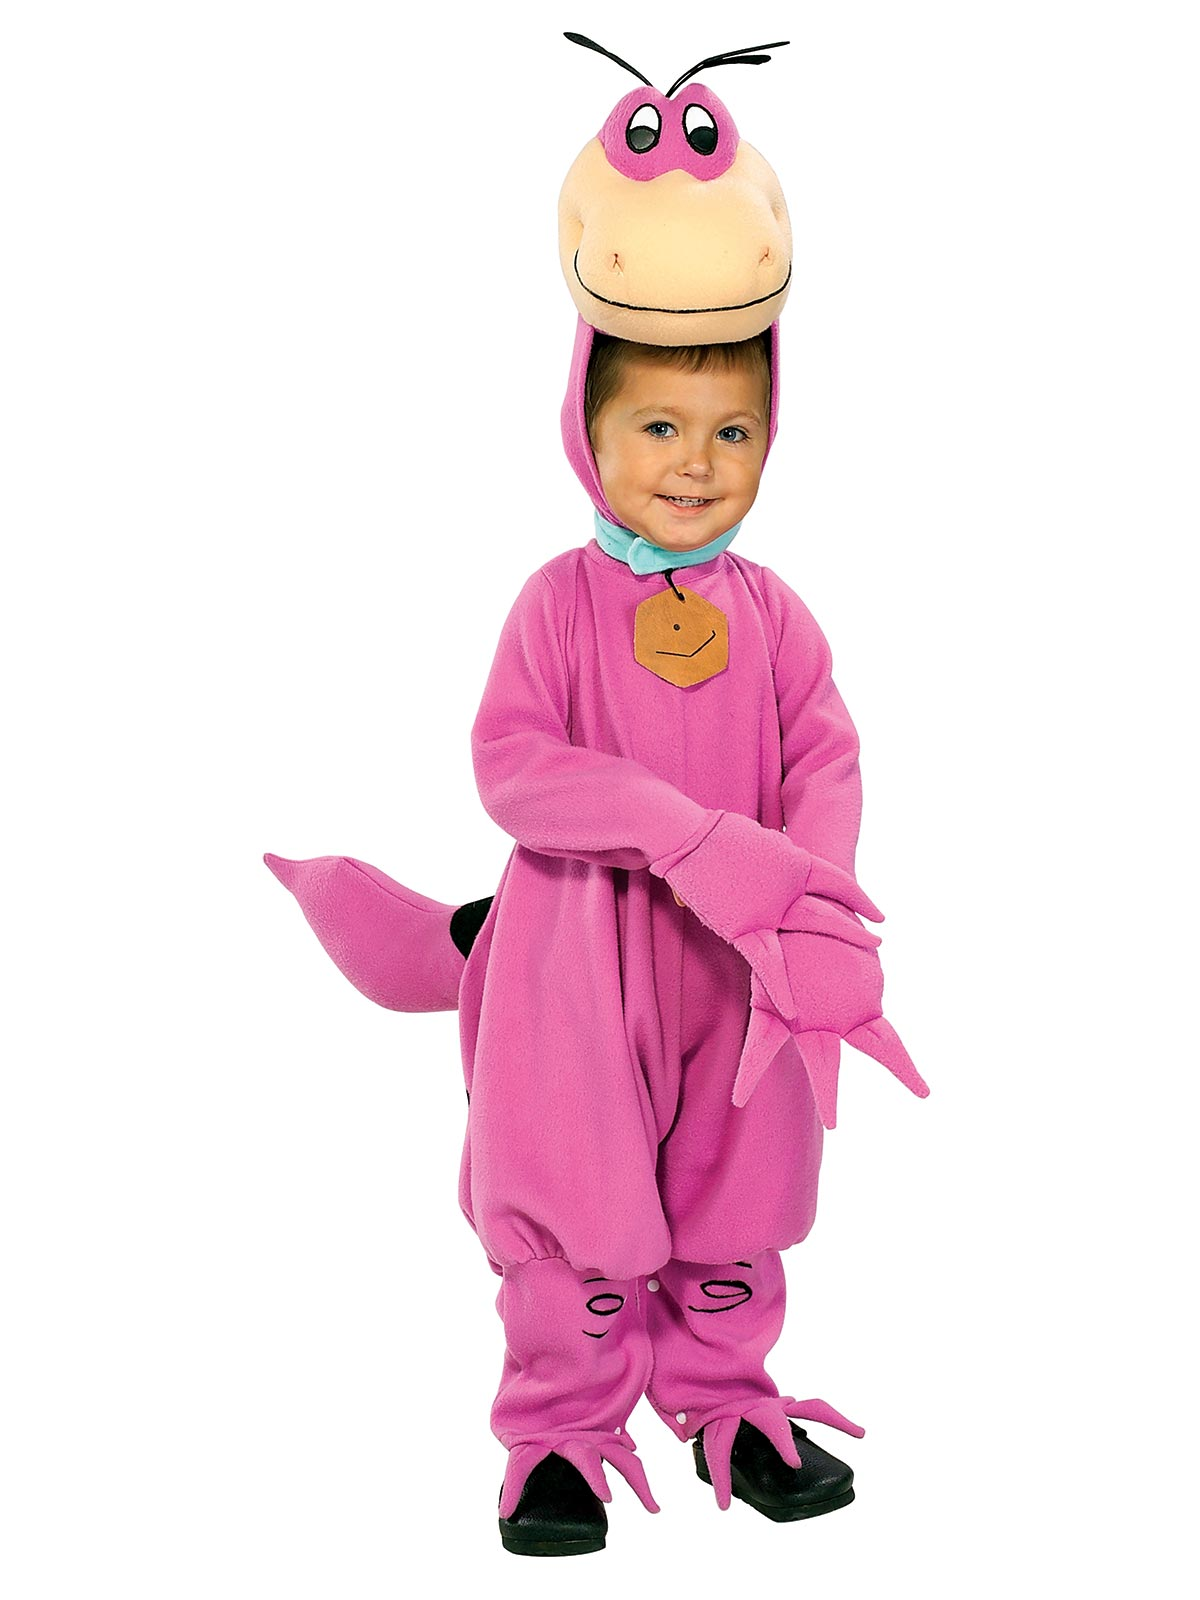 Dino The Flintstones Deluxe Child Costume - Buy Online Only